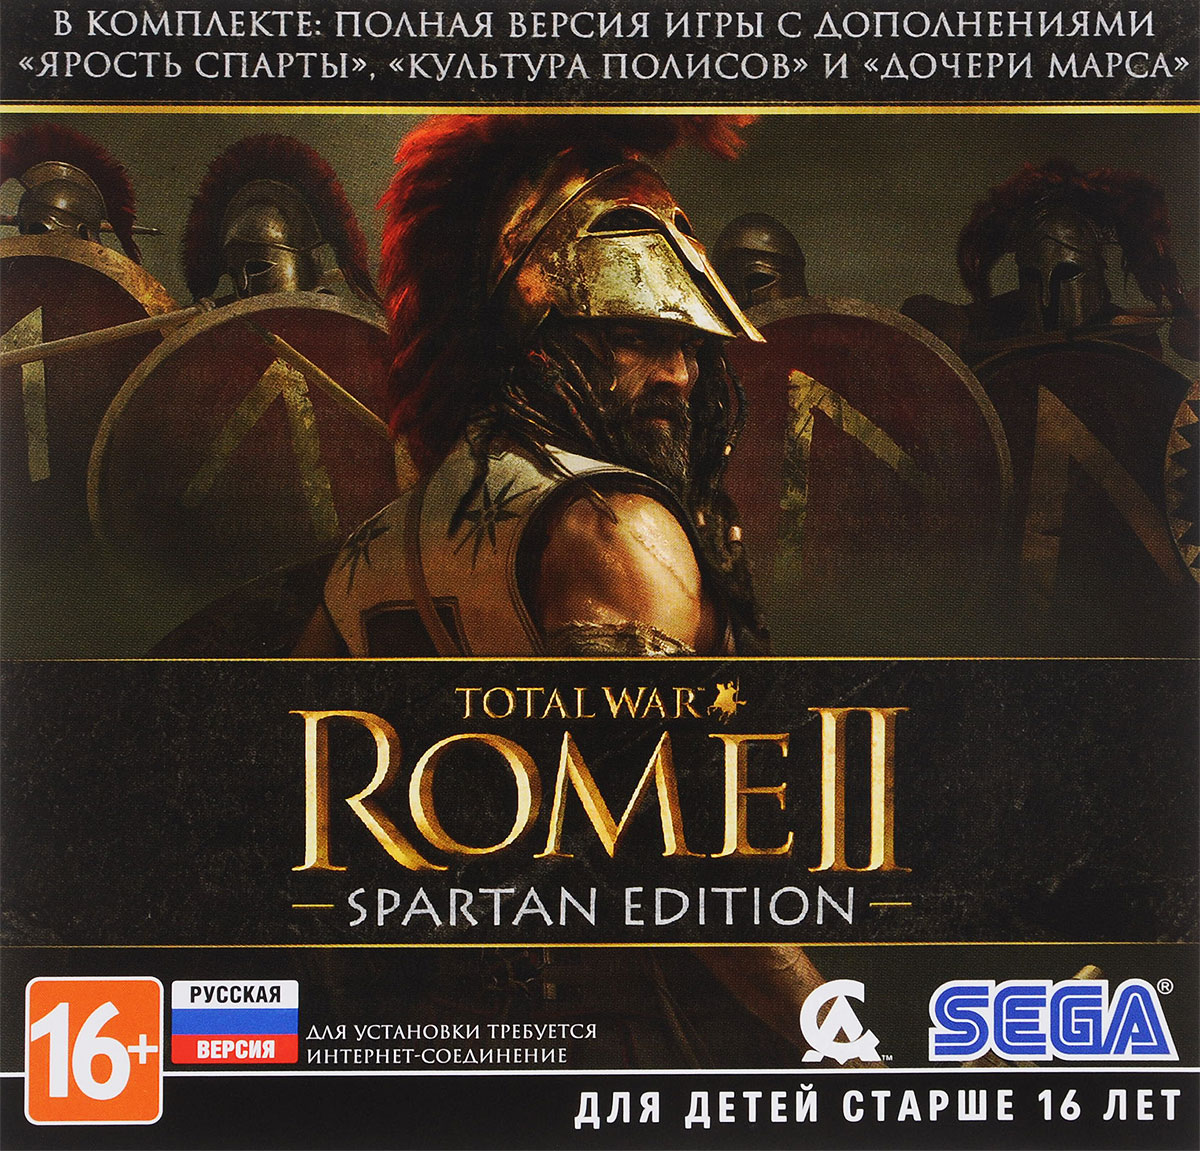 Total War: Rome II. Spartan Edition zipower pm 5151